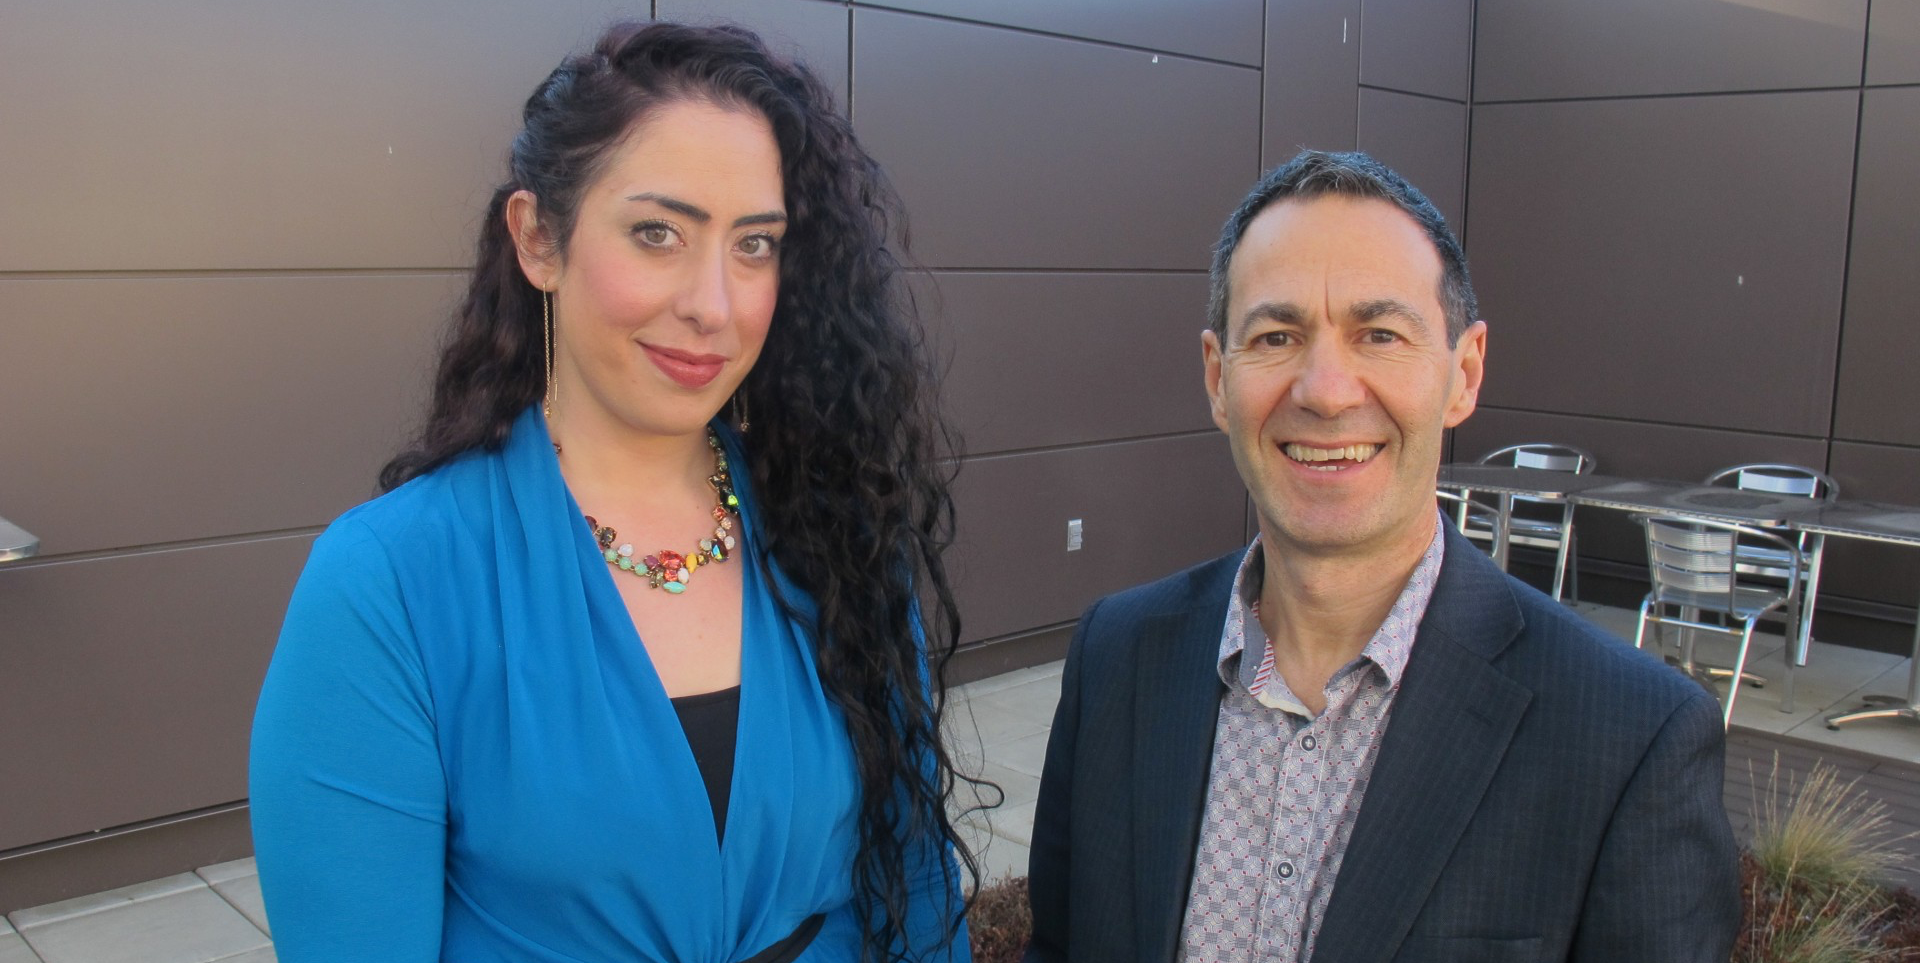 (From left) Yasmeen Krameddine and Peter Silverstone